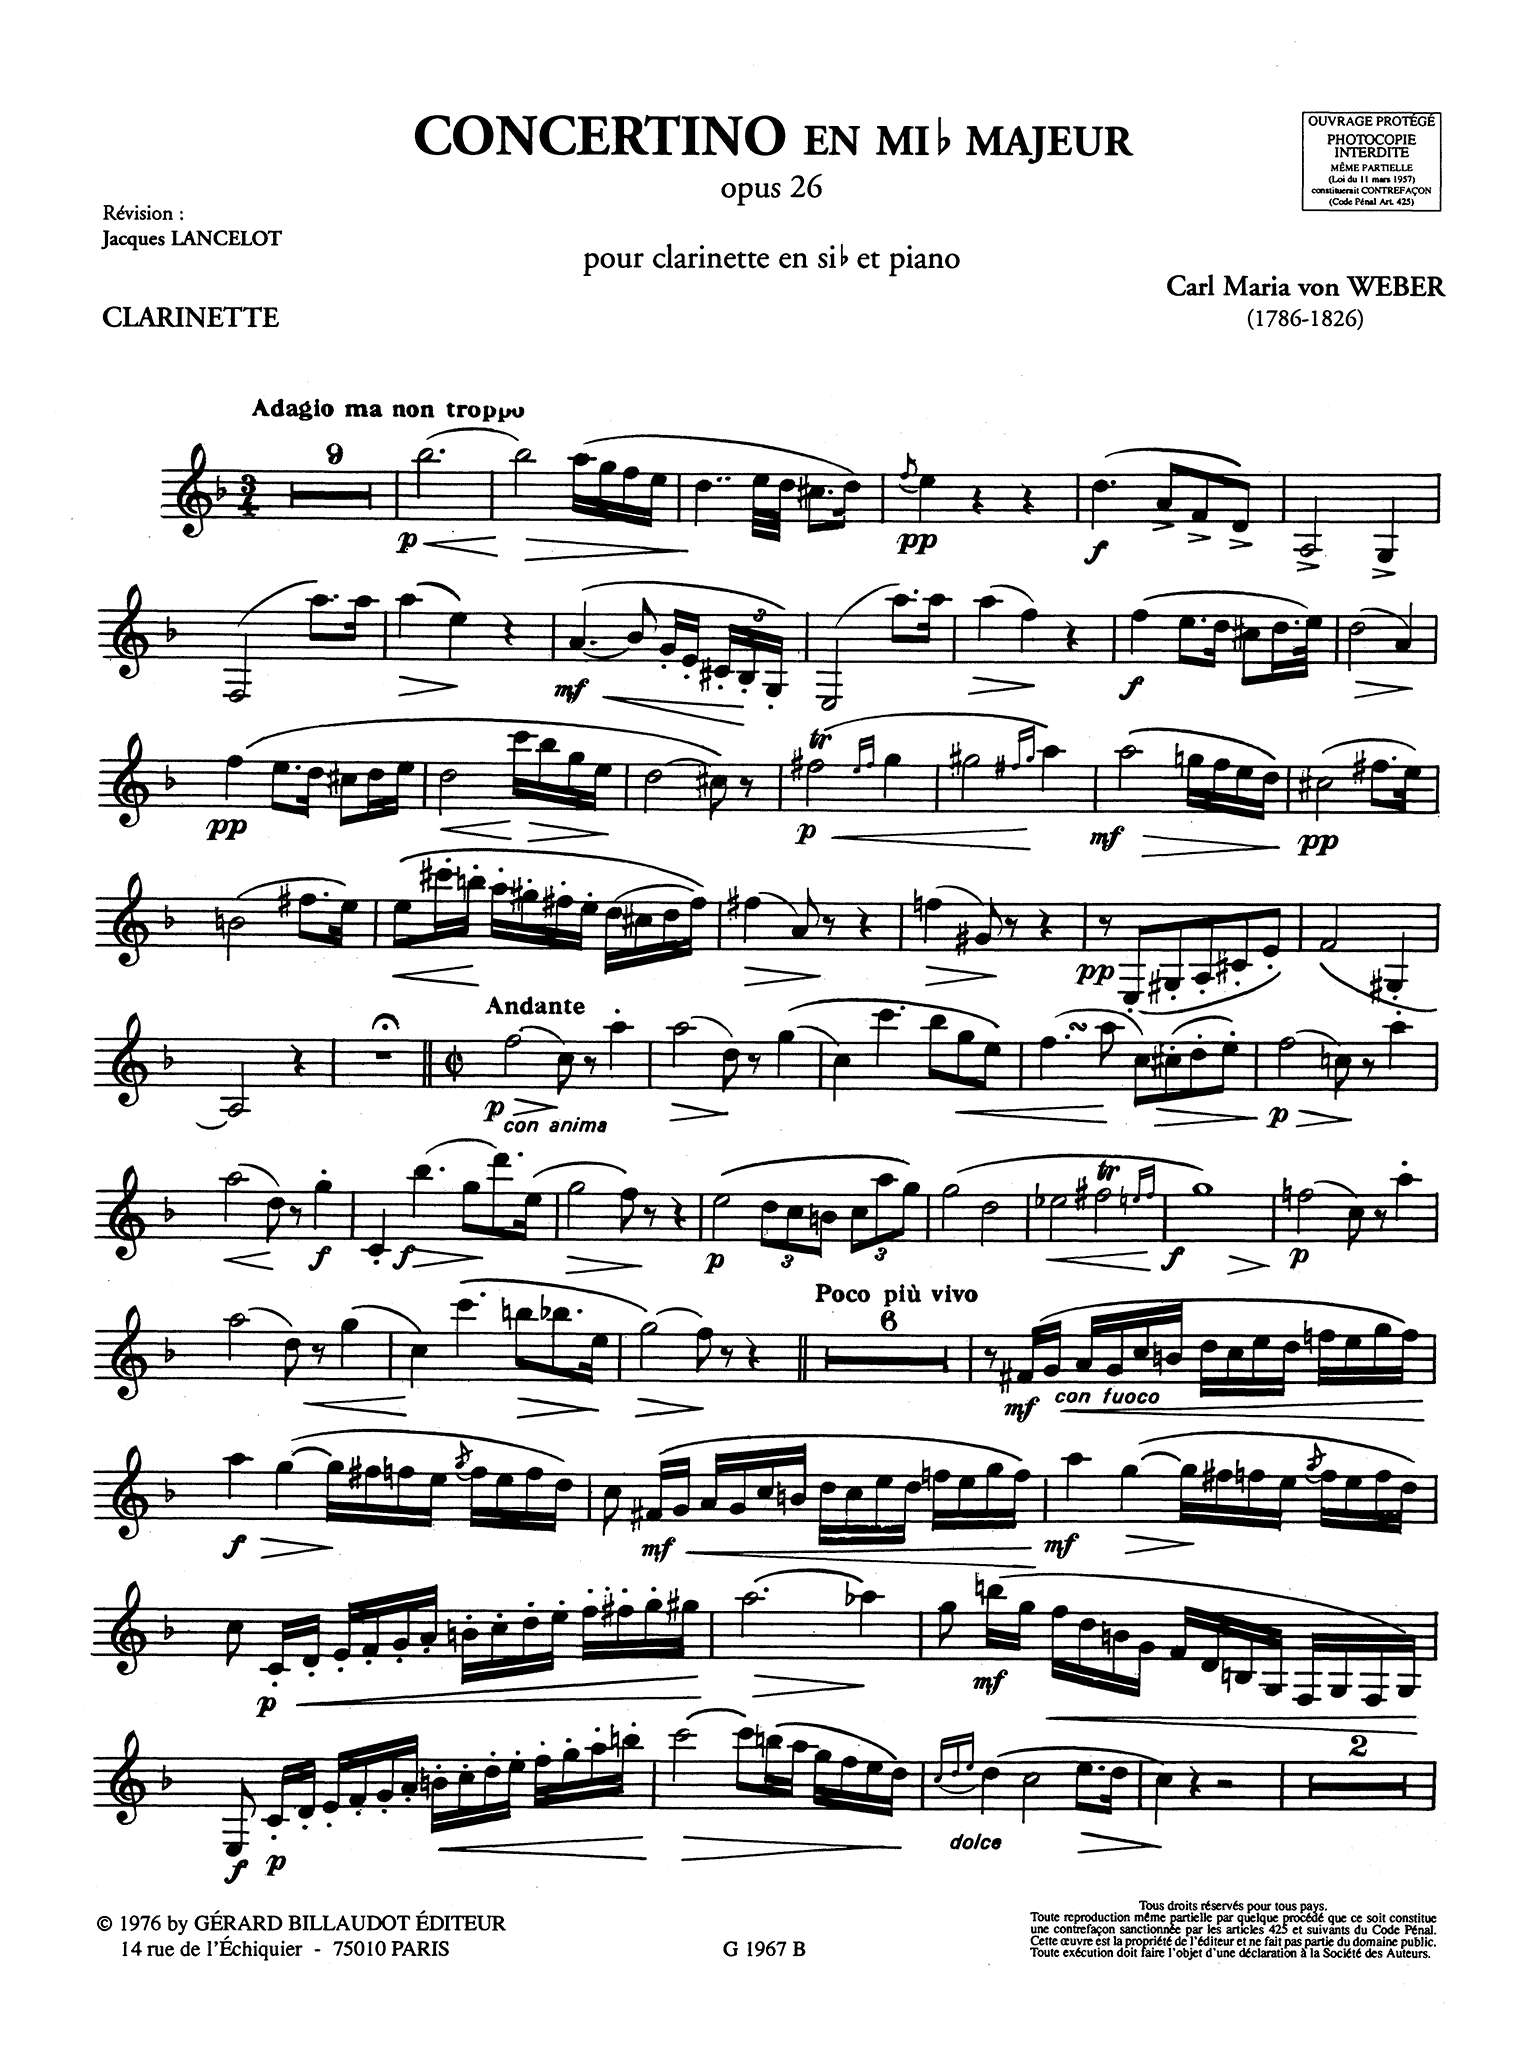 Weber Concertino, Op. 26 Clarinet part